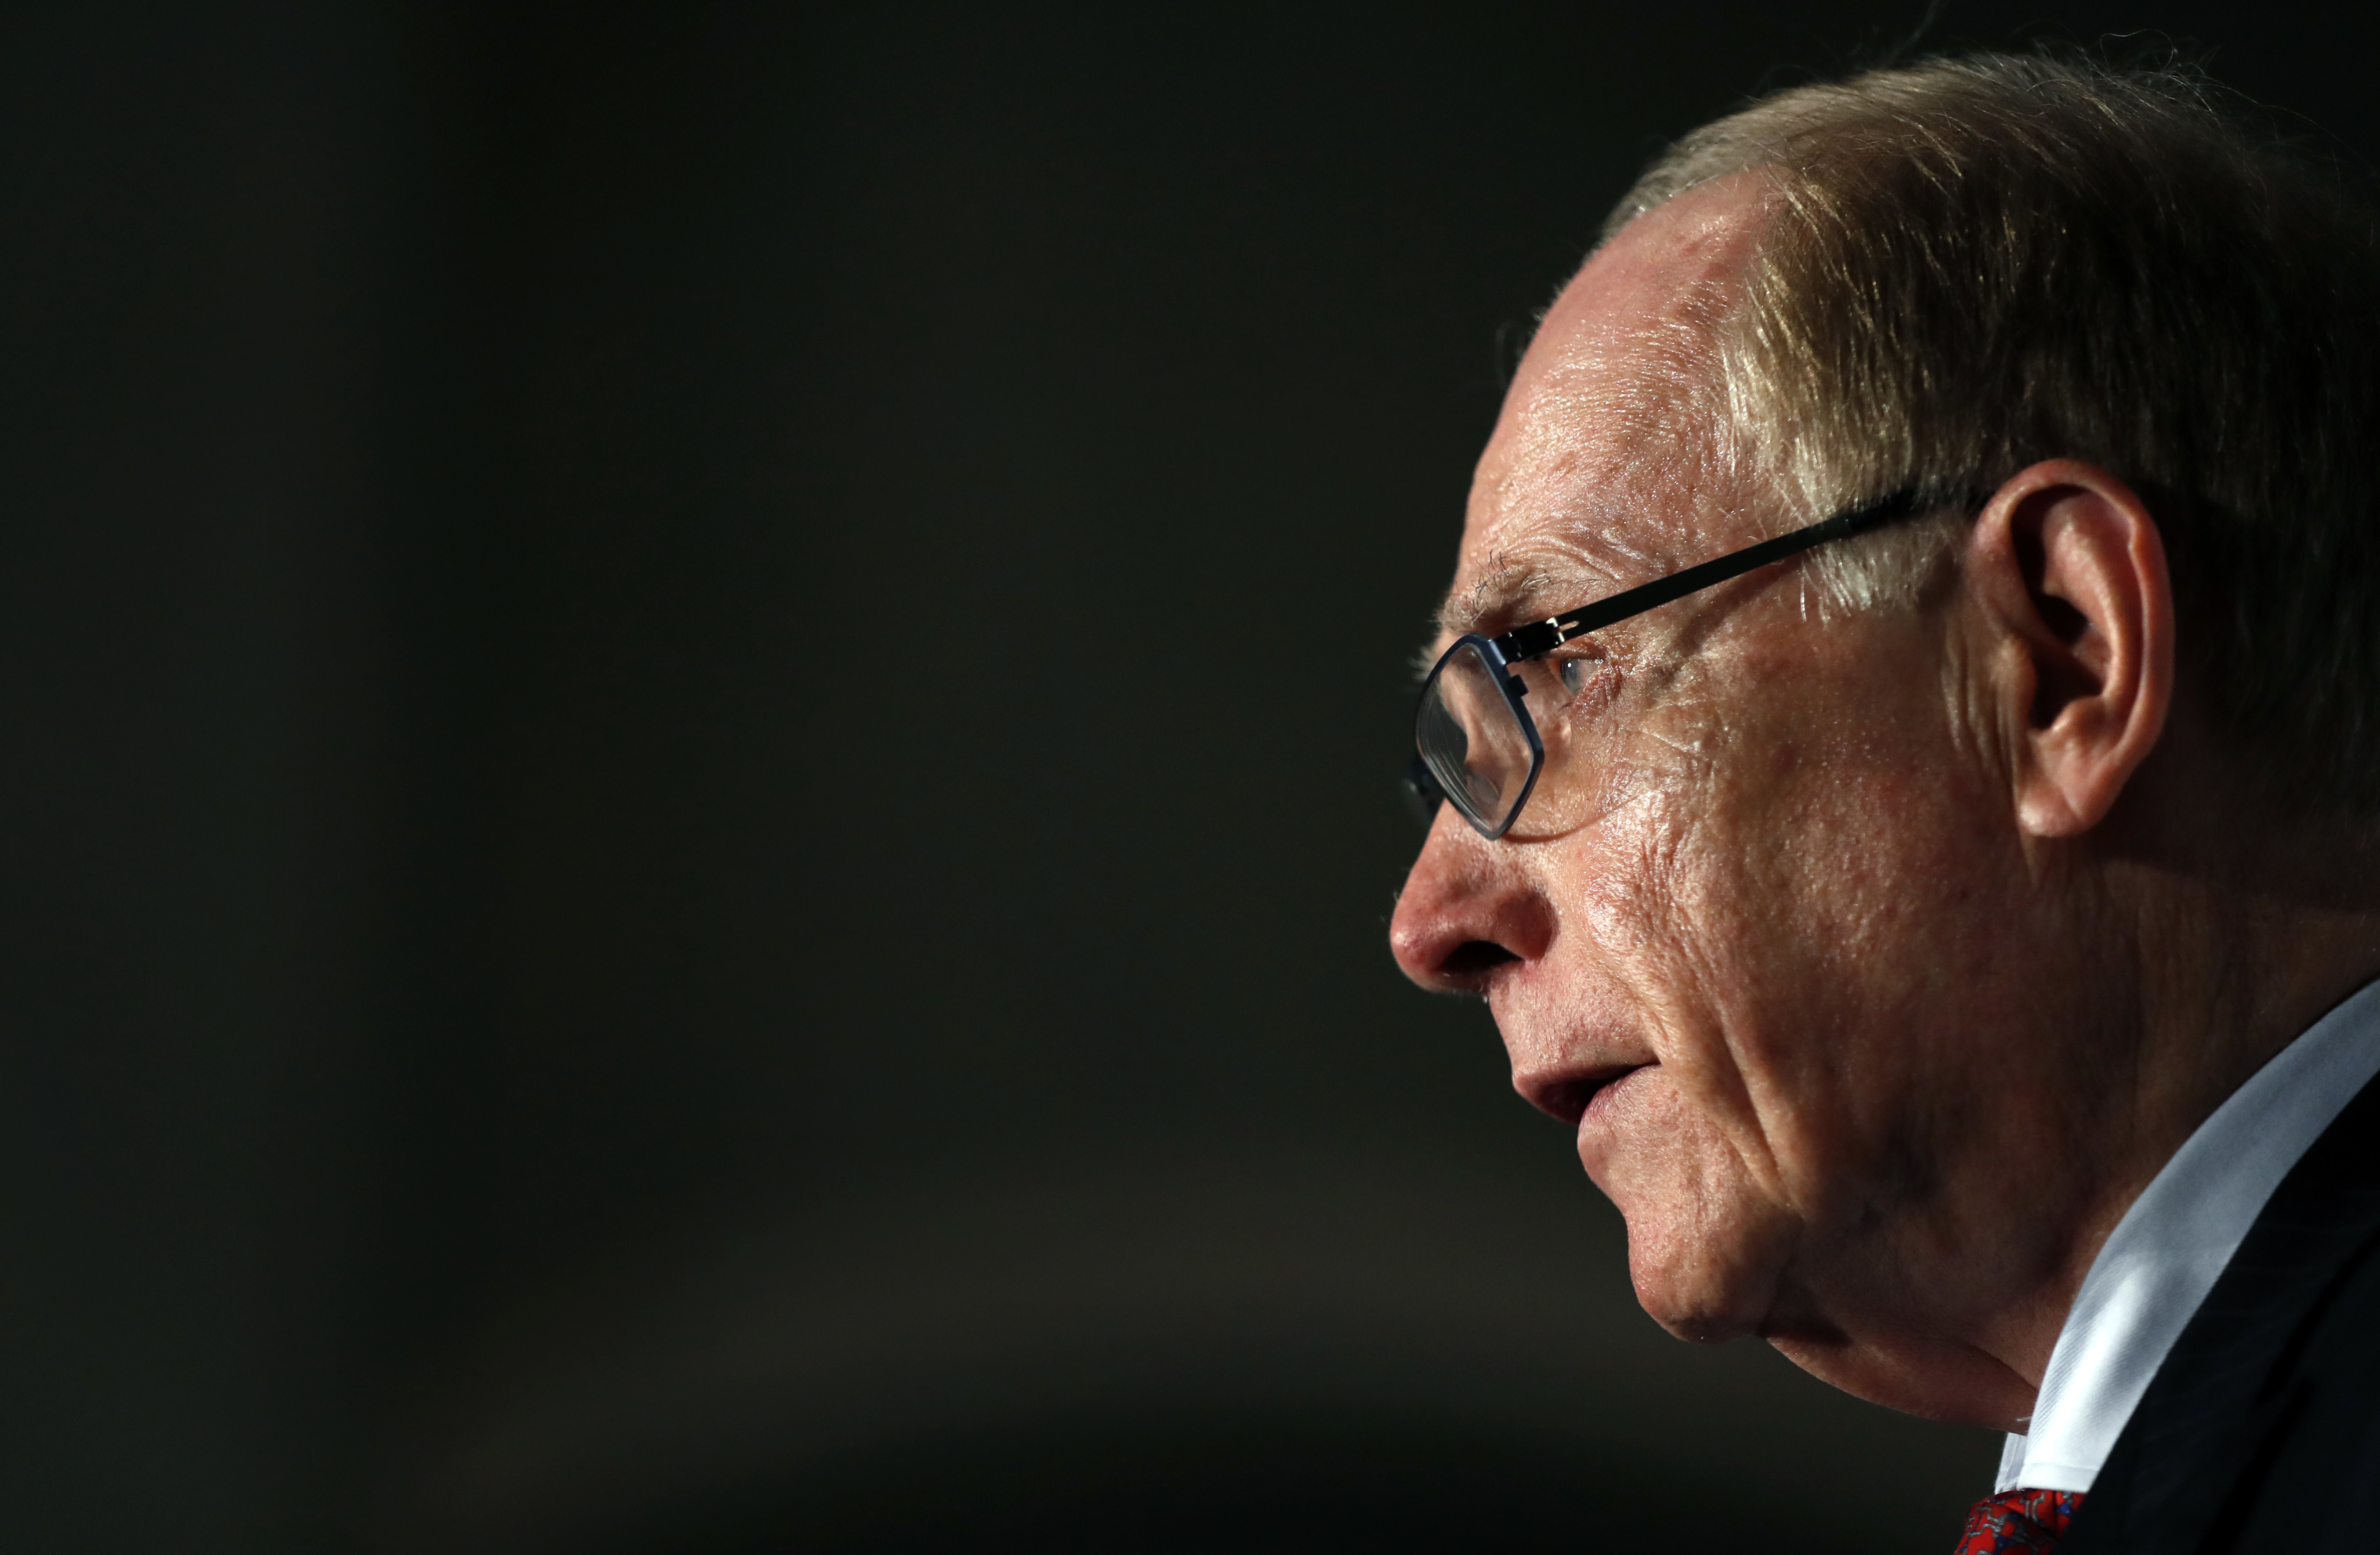 World Anti-Doping Agency investigator Richard McLaren during a press conference in London, on Dec. 9, 2016. (AP Photo/Kirsty Wigglesworth)